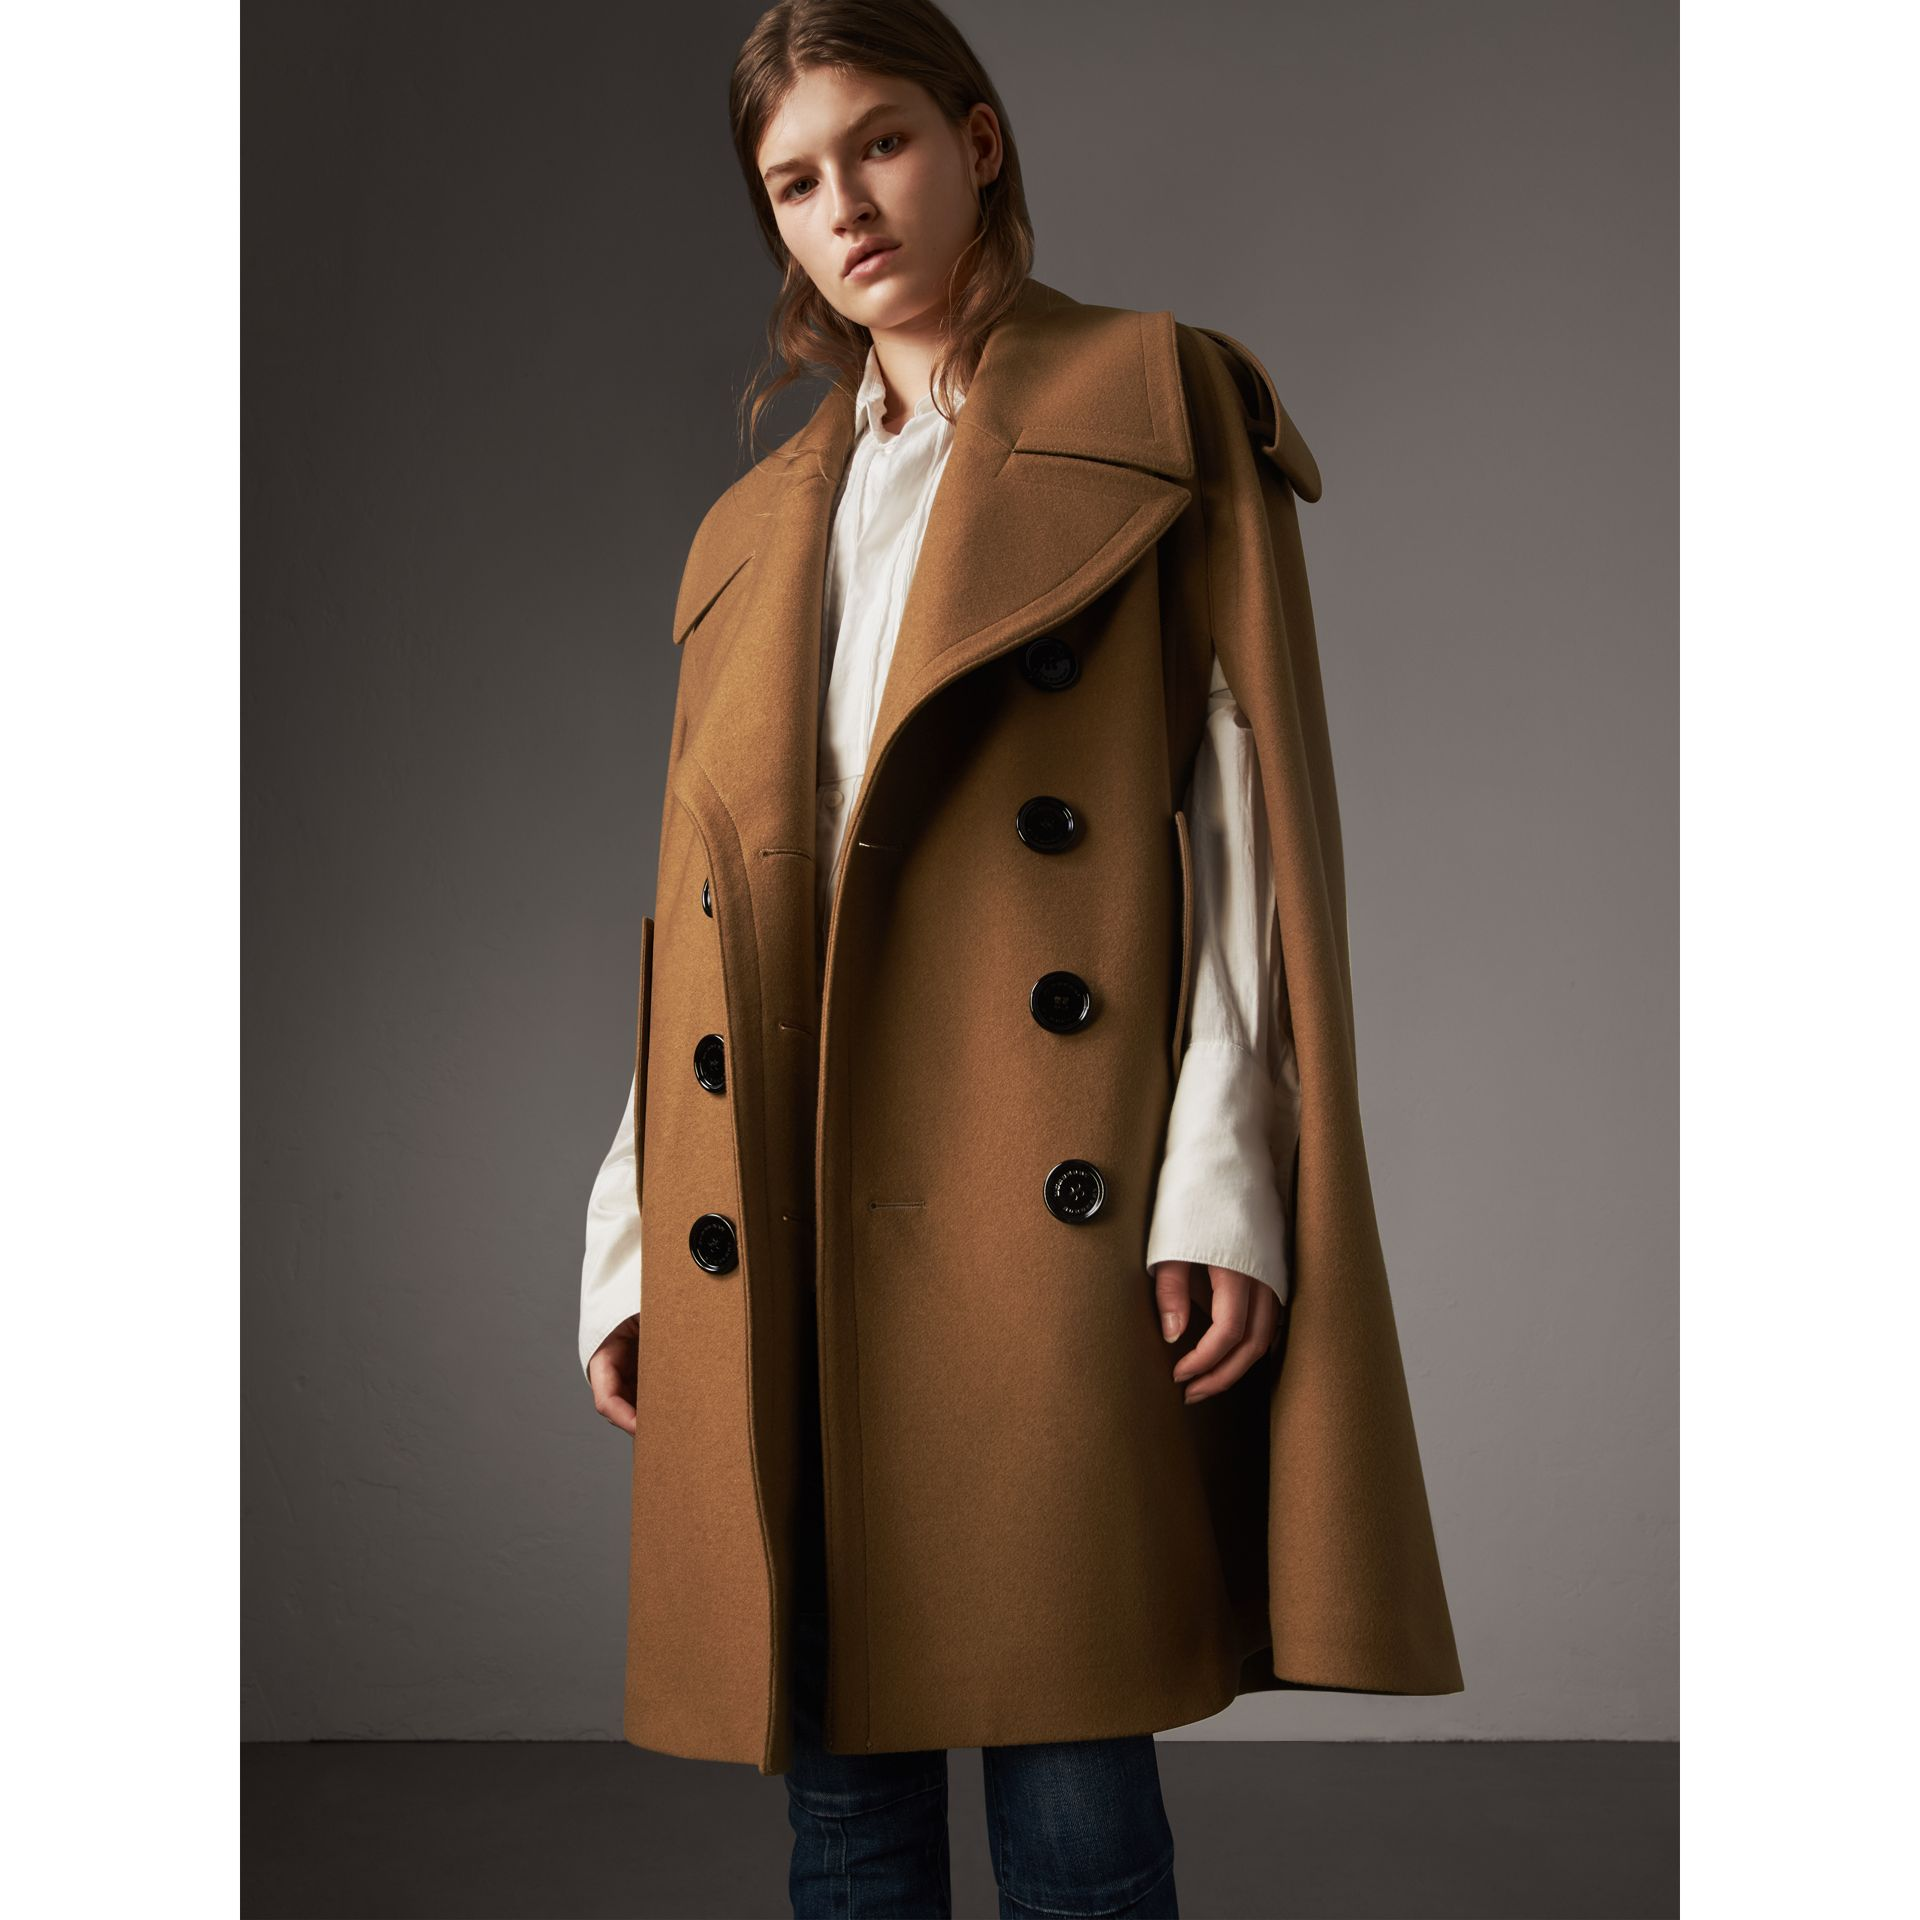 Wool Double-breasted Military Cape in Camel - Women | Burberry Hong Kong - gallery image 1